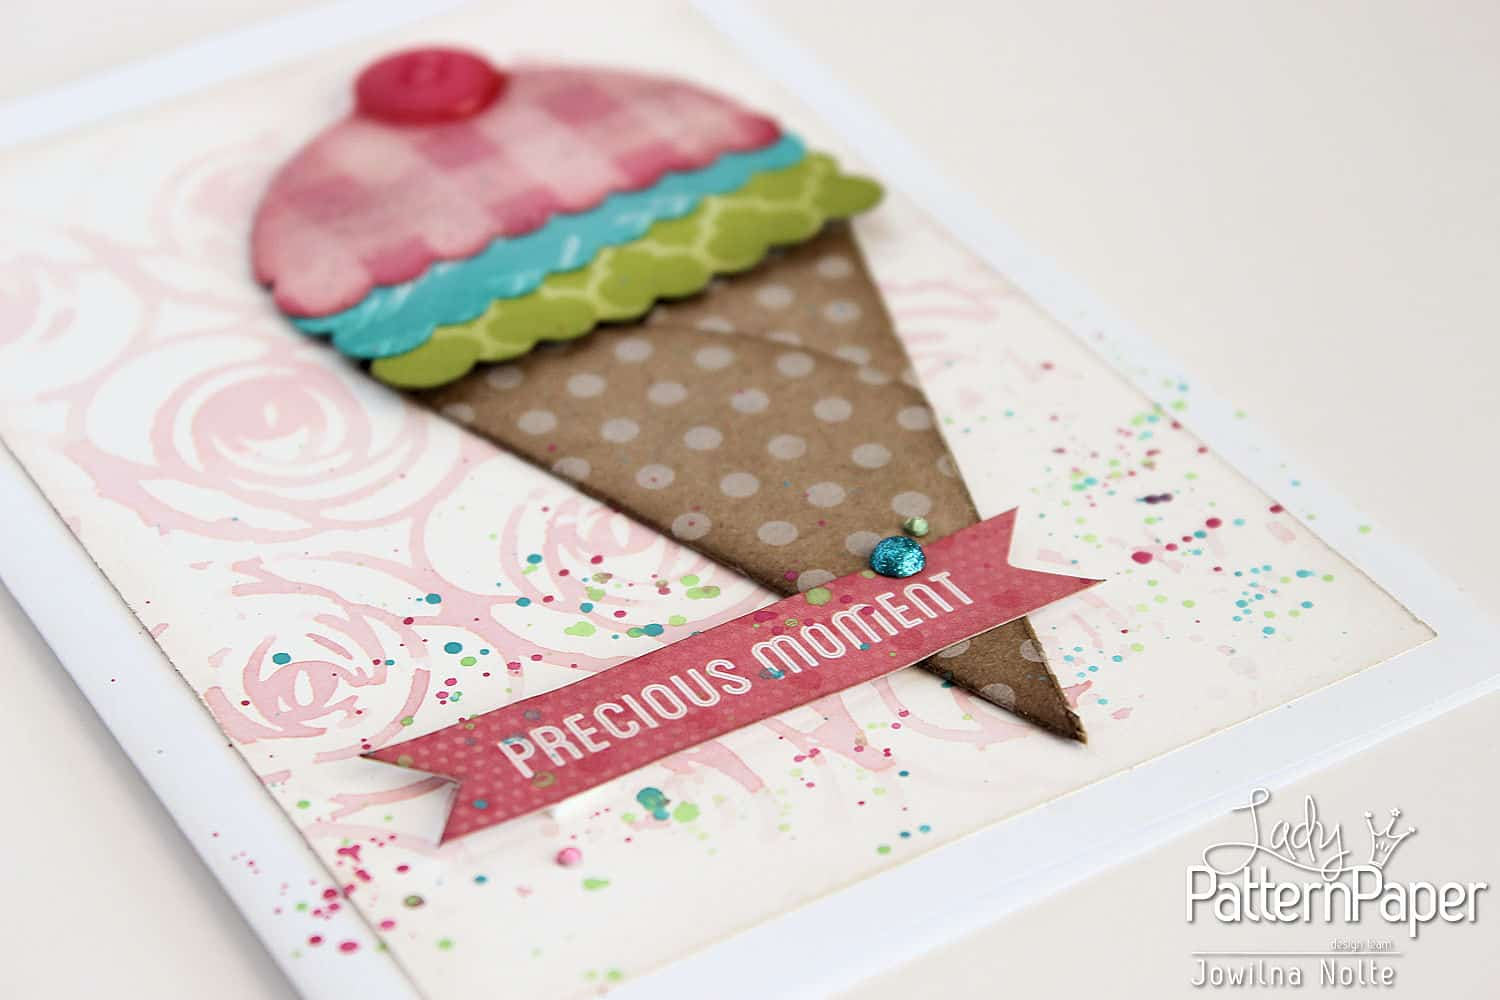 Punched Shaped Card - Precious Moment